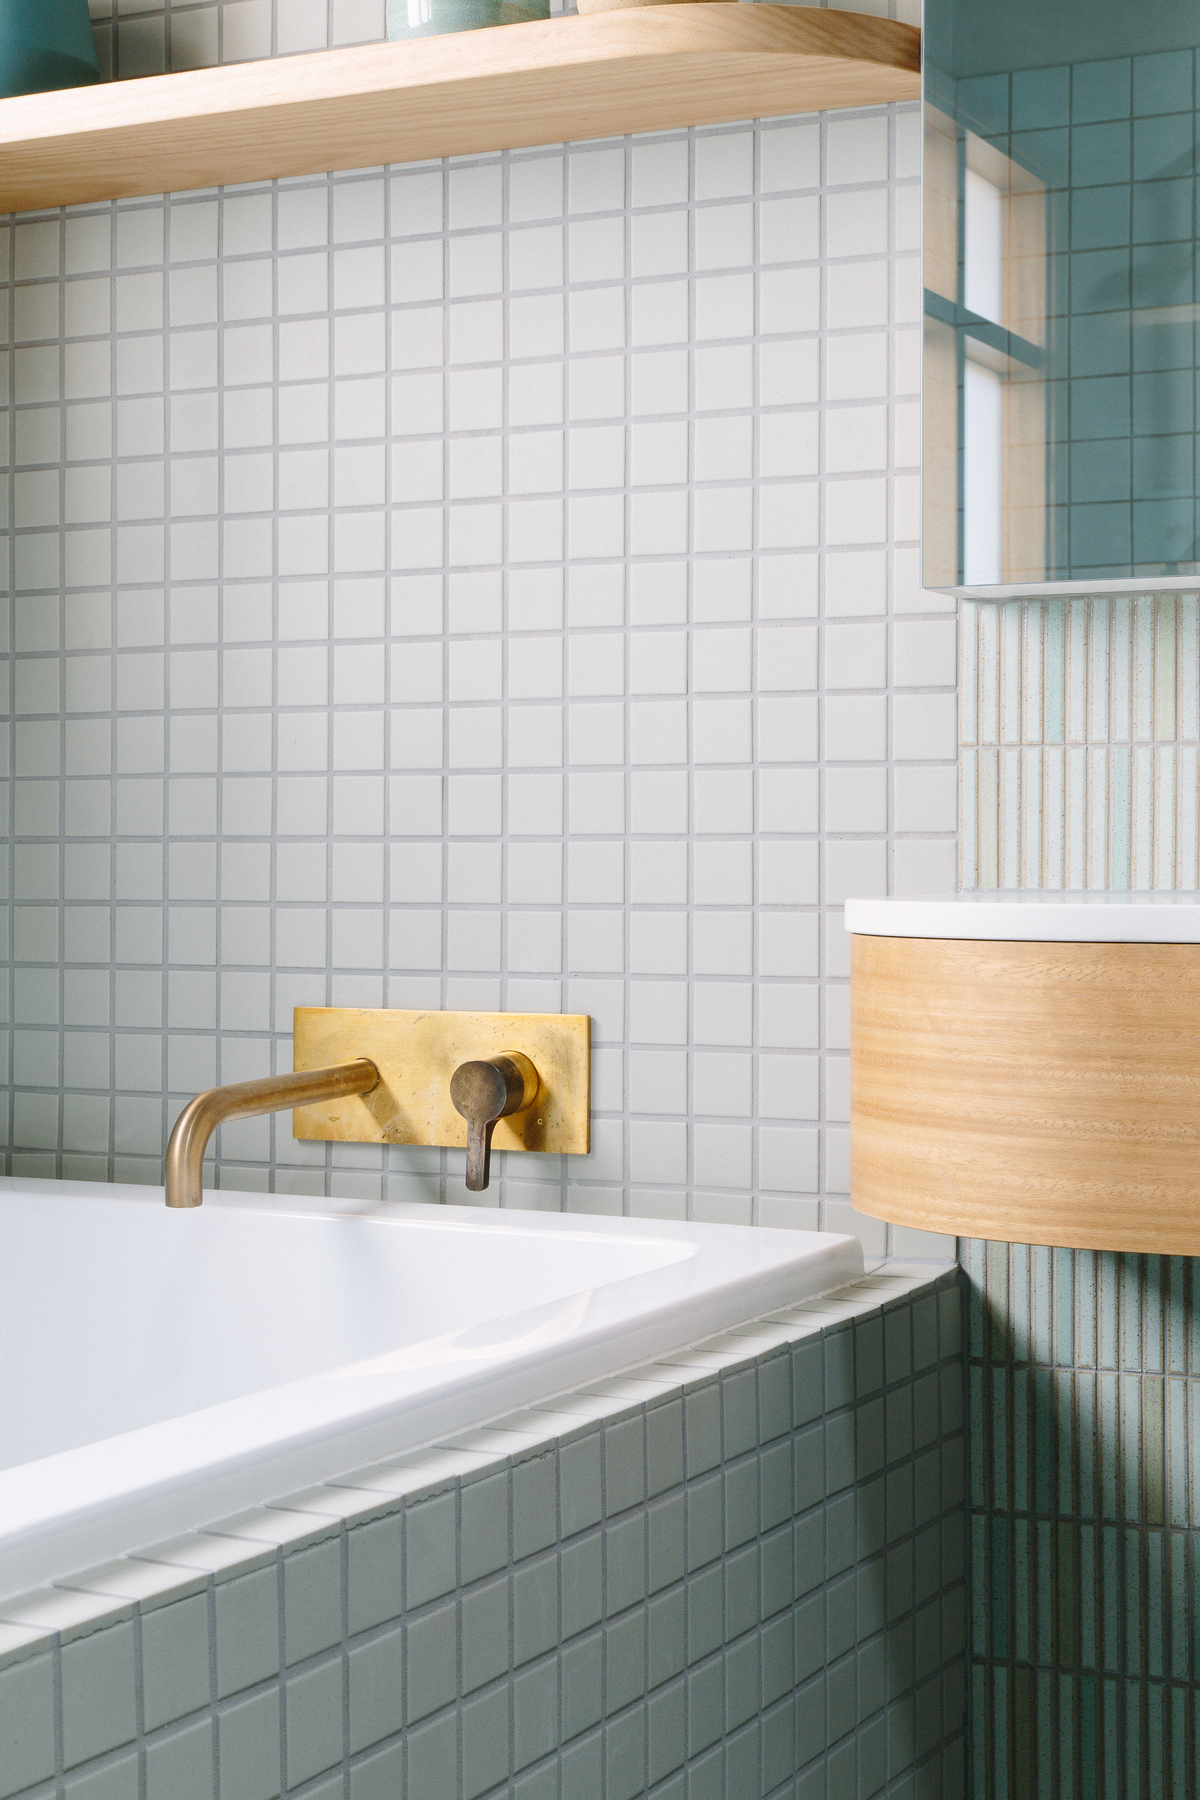 Yarravillia Project By Brave New Eco Local Residential Architecture And Bathroon Interior Design Yarraville,melbourne Image 20